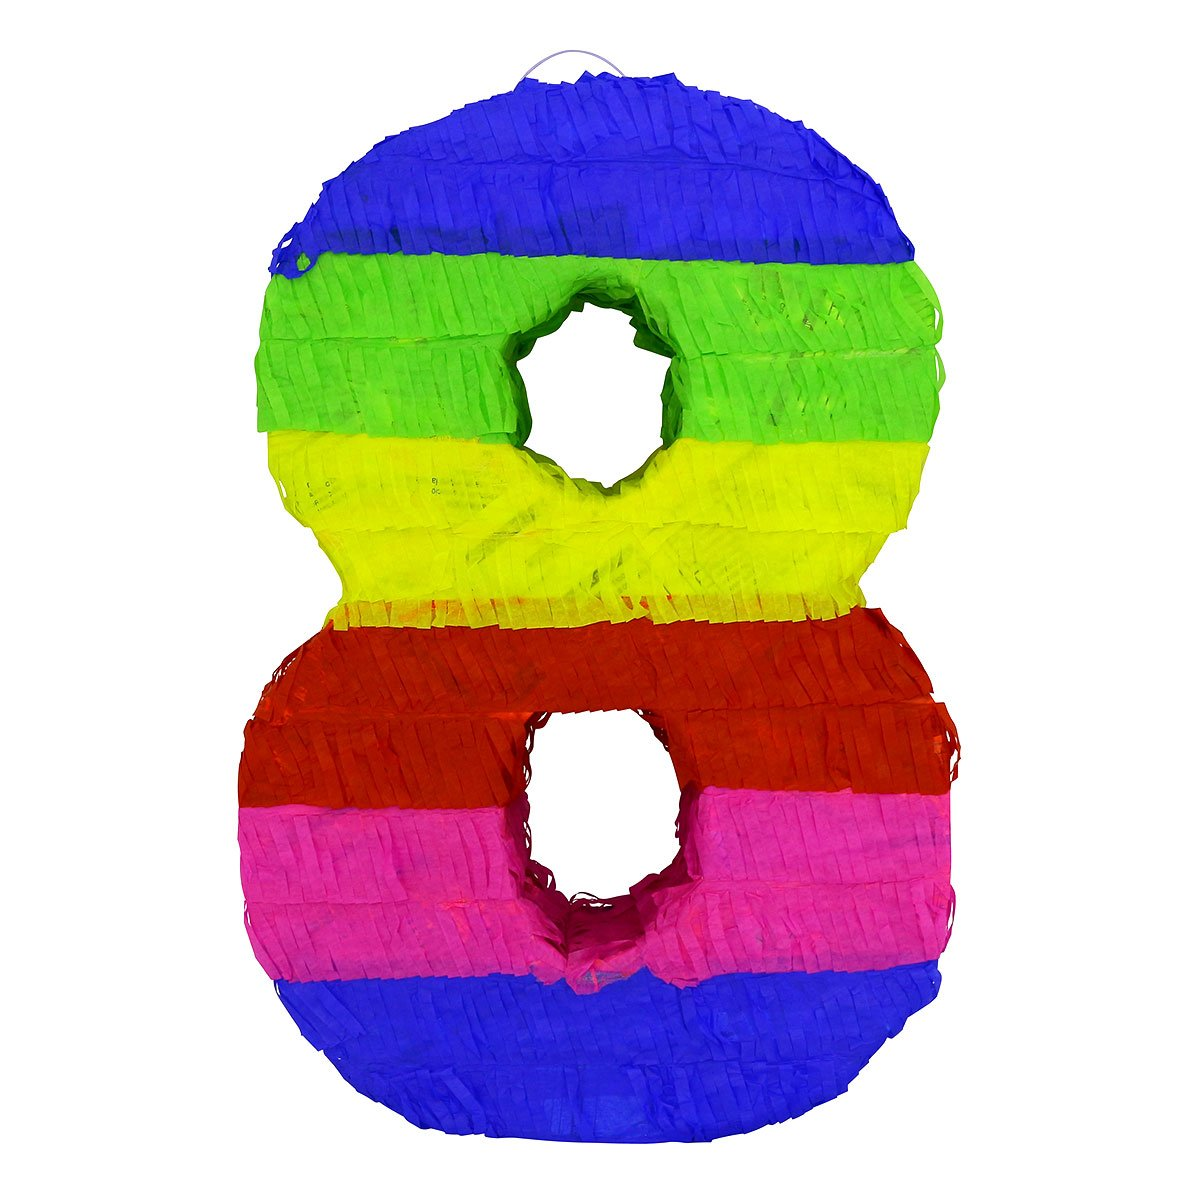 LYTIO - Multicolor Paper 3D Number Eight Pinata (Piñata) – Great for Any Party, Décor, Photo Prop.